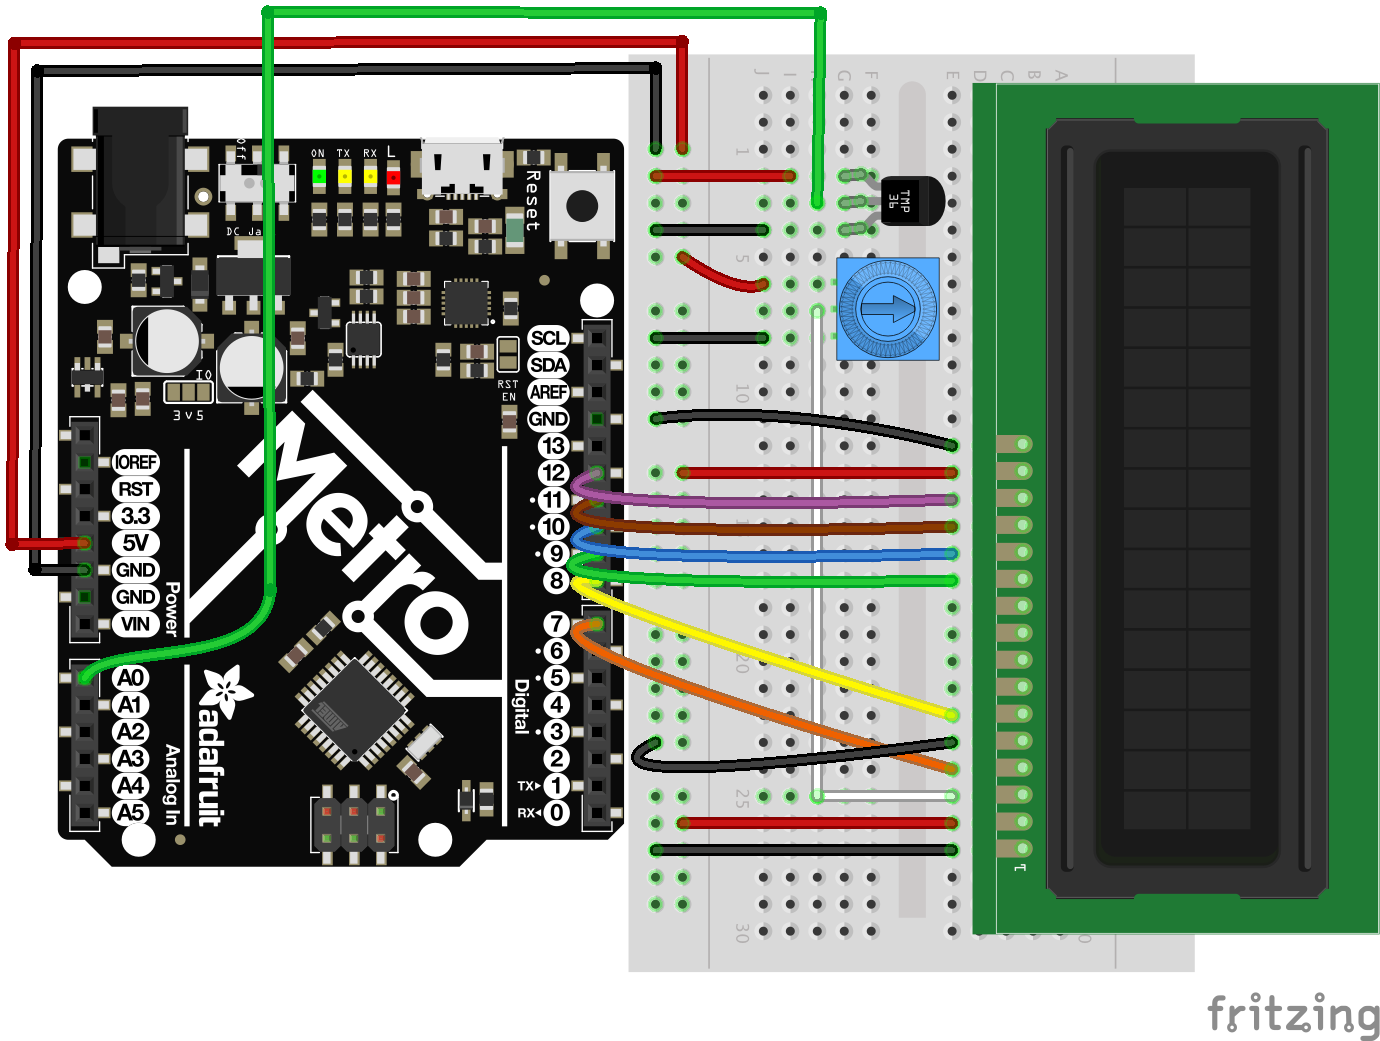 adafruit_products_circ14_bb.png